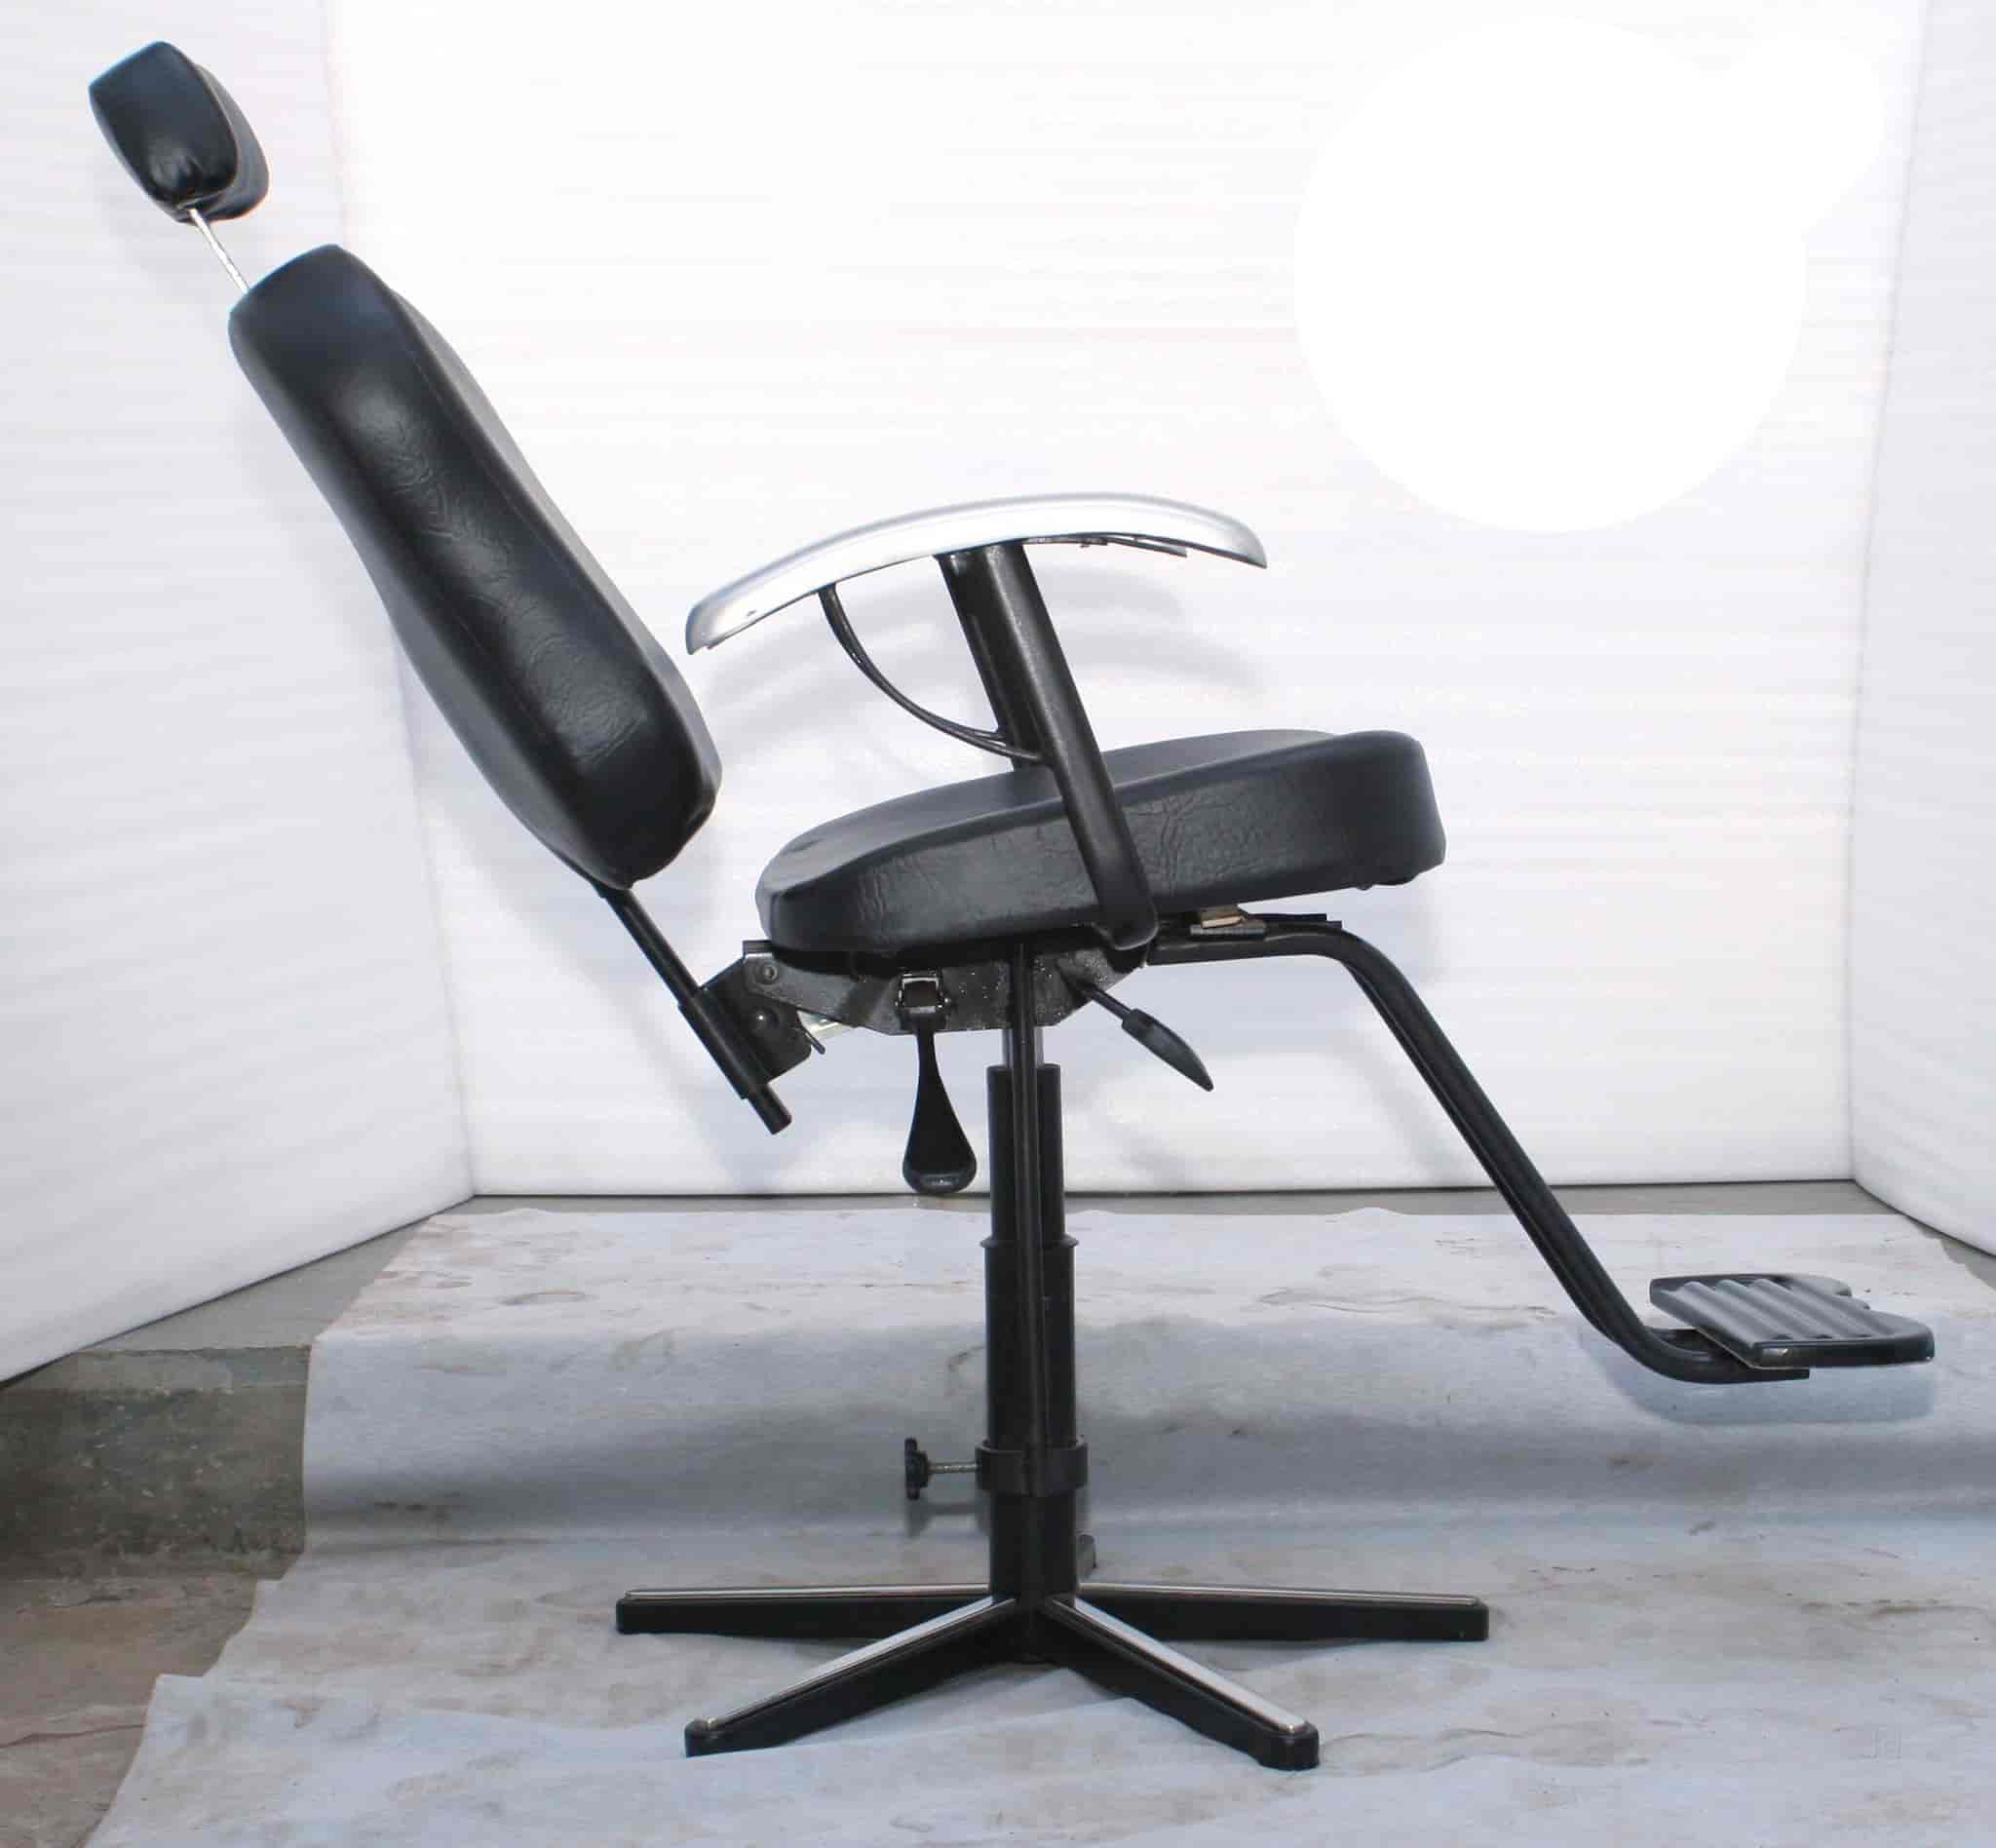 stock only italica hard saloon side fast ita in hair view styling katy black urethane shipping armrests chair comfort